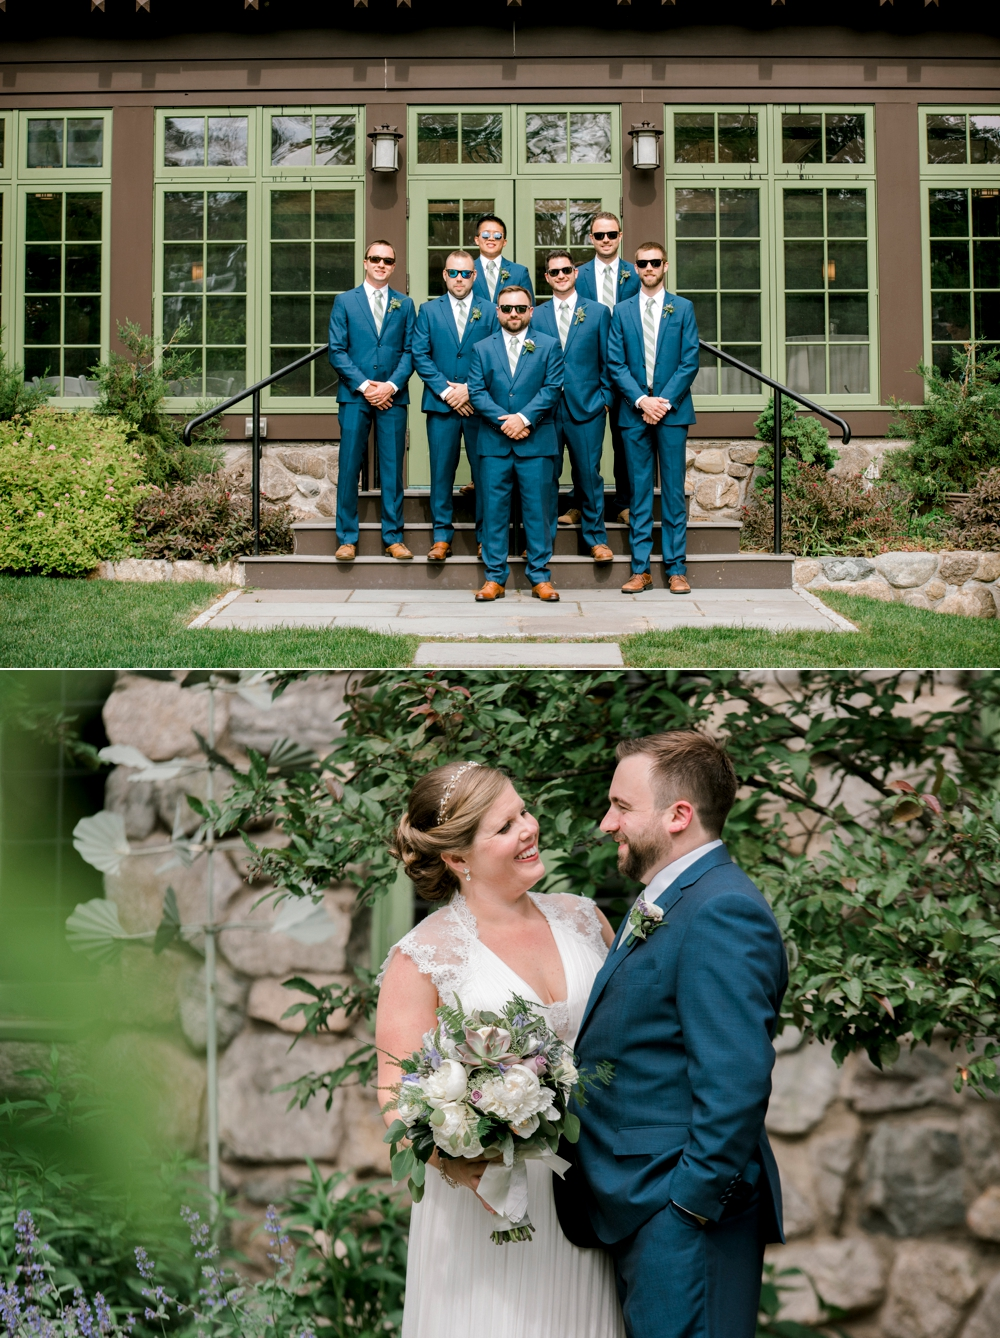 SomerbyJonesPhotography__Willowdale_WillowdaleWedding_0020.jpg